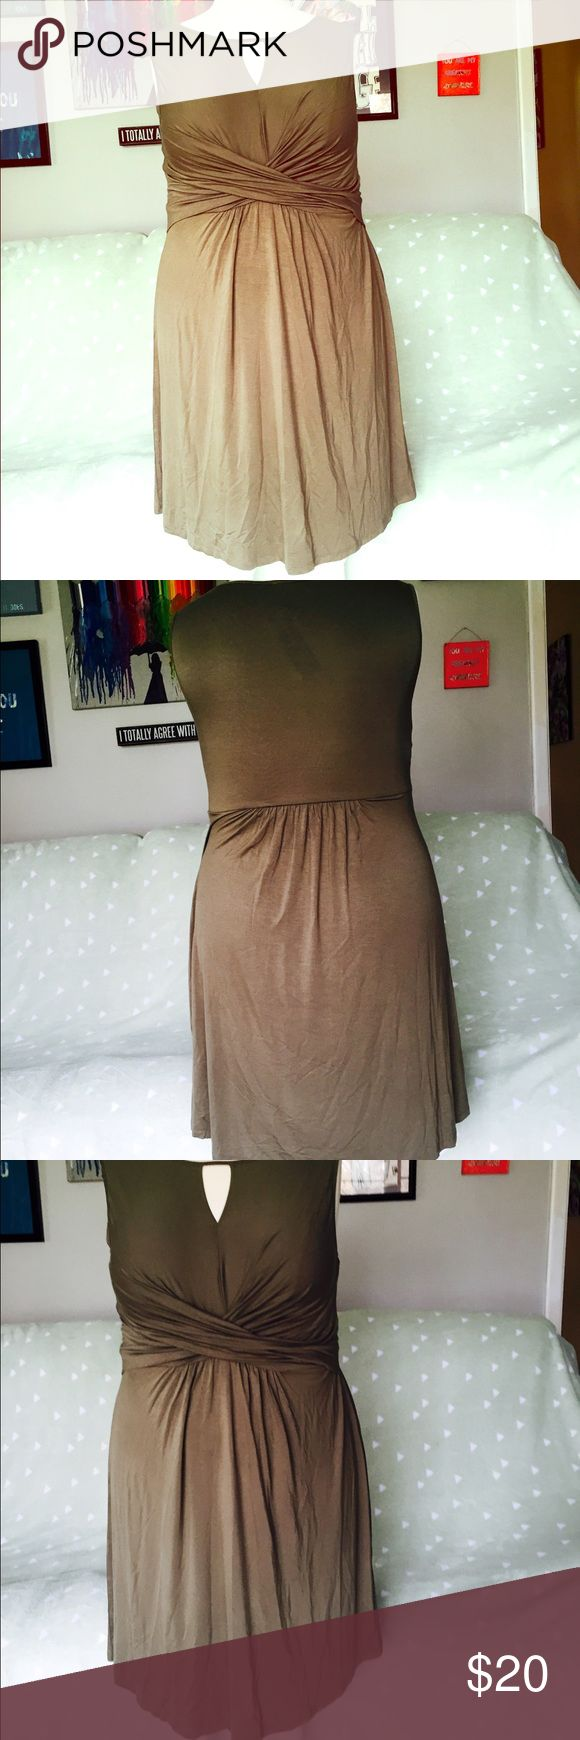 Spenser Jeremy Olive Dress Dark green stretchy dress with a gorgeous fit. Pleated back. NWT. Runs big, marking as 1x. Spenser Jeremy Dresses Midi